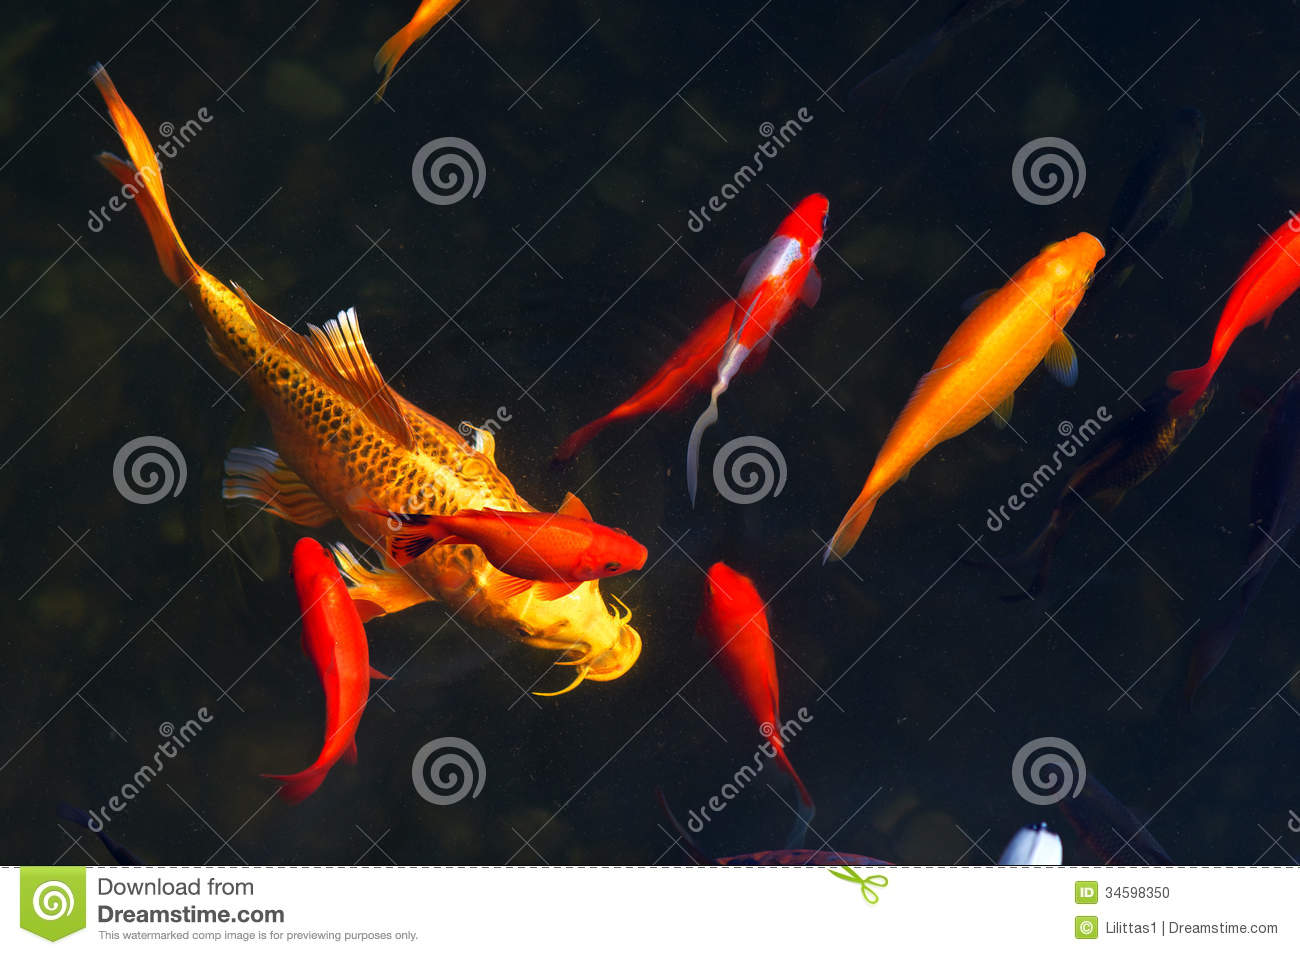 Koi Carps Fish Japanese swimming  Cyprinus carpio  beautiful color    Japanese Koi Fish Swimming